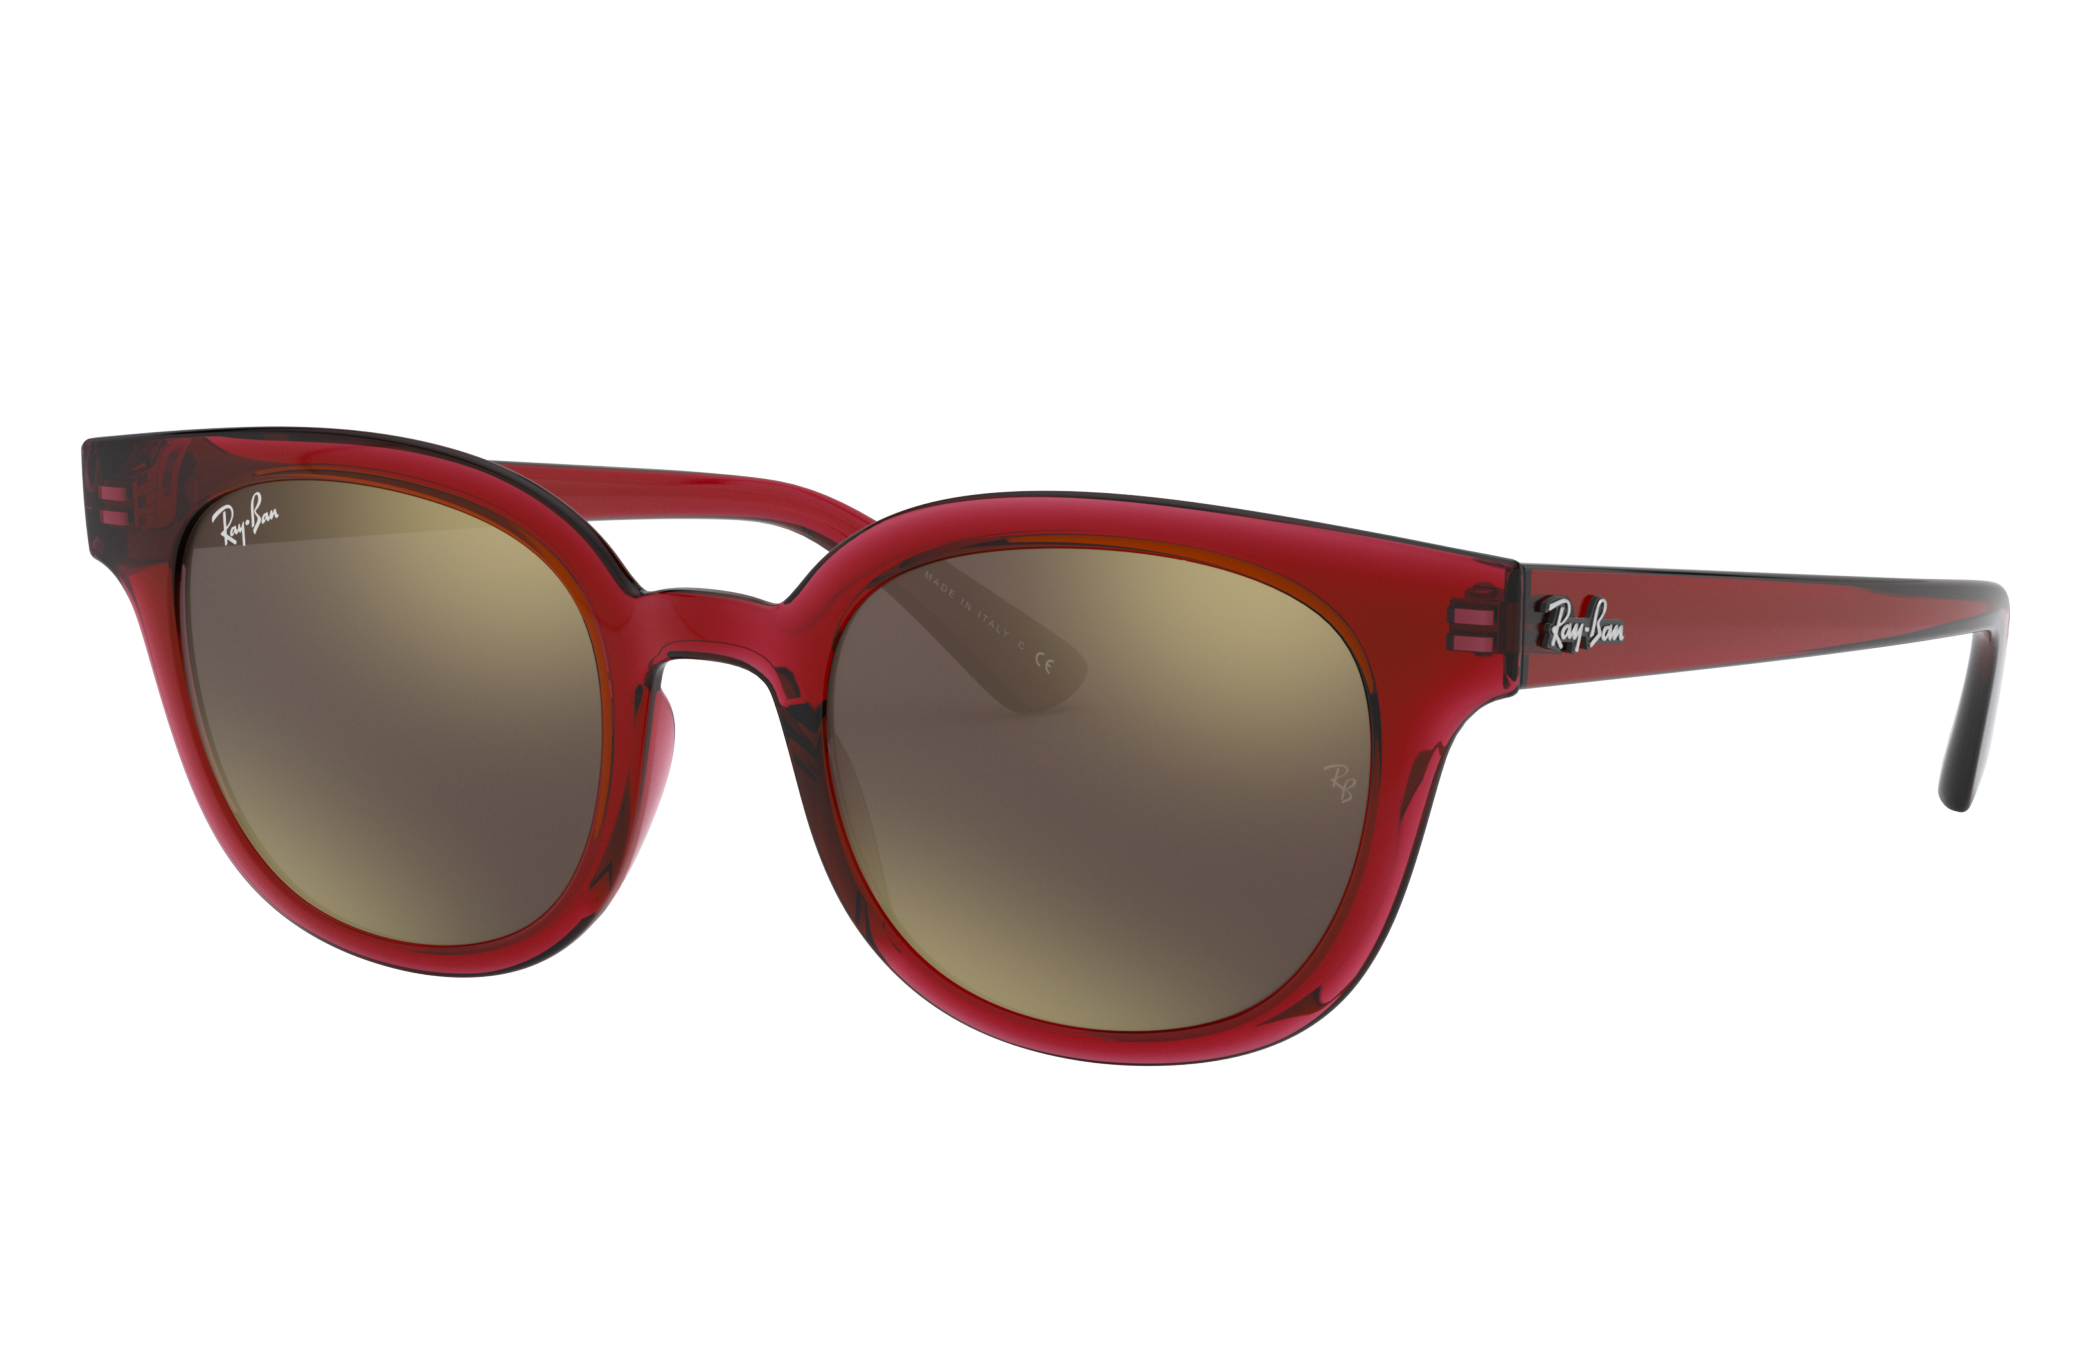 Ray-Ban Rb4324 Low Bridge Fit Transparent Red, Brown Lenses - RB4324F